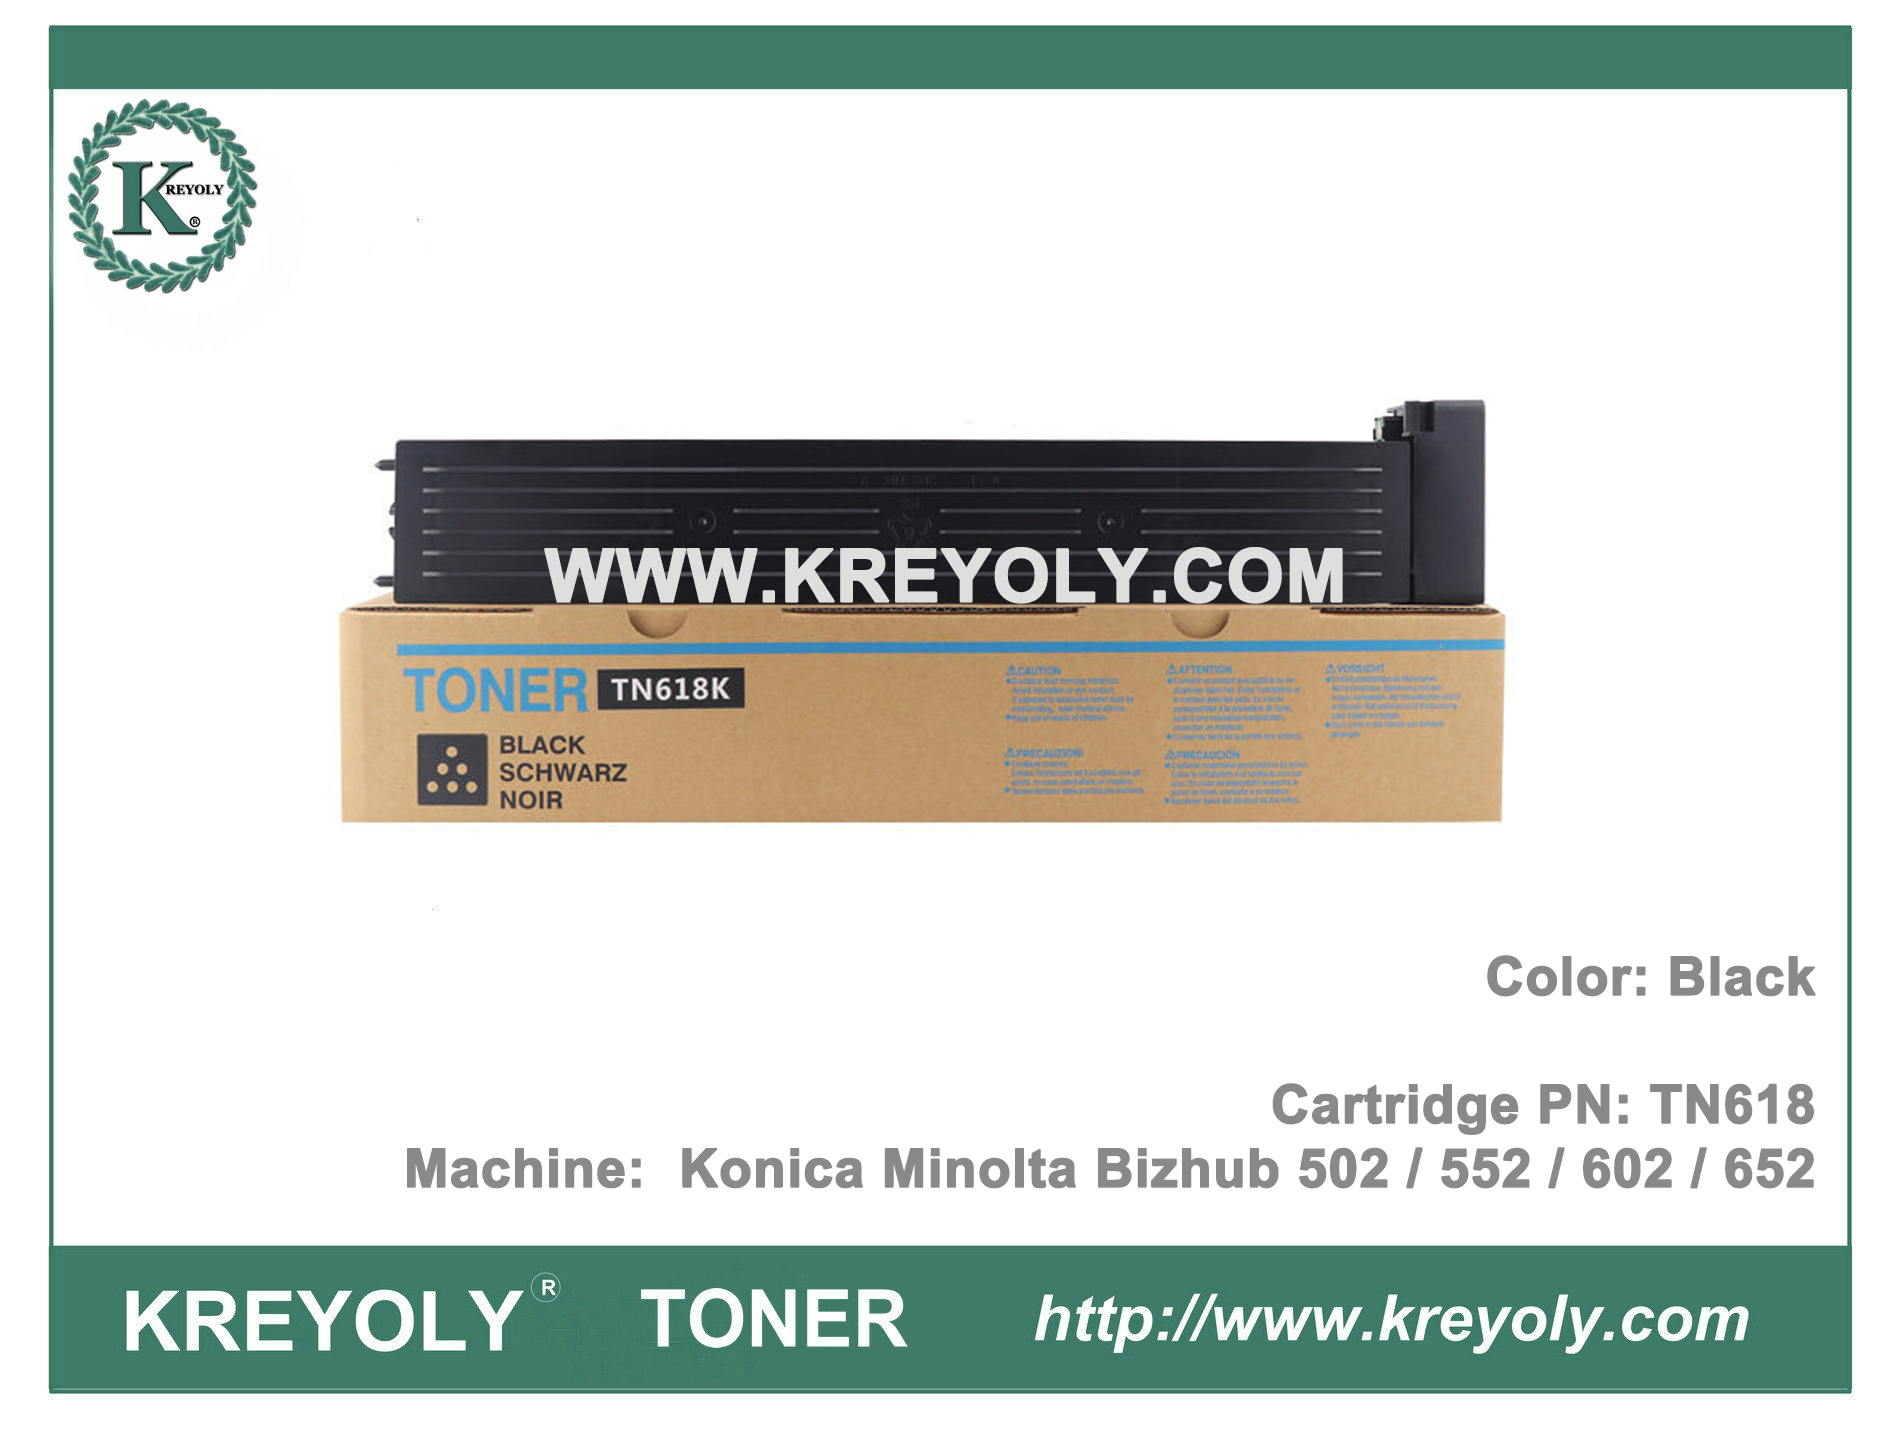 TN618 TONER FOR KONICA MINOLTA BIZHUB 552 652 502 602